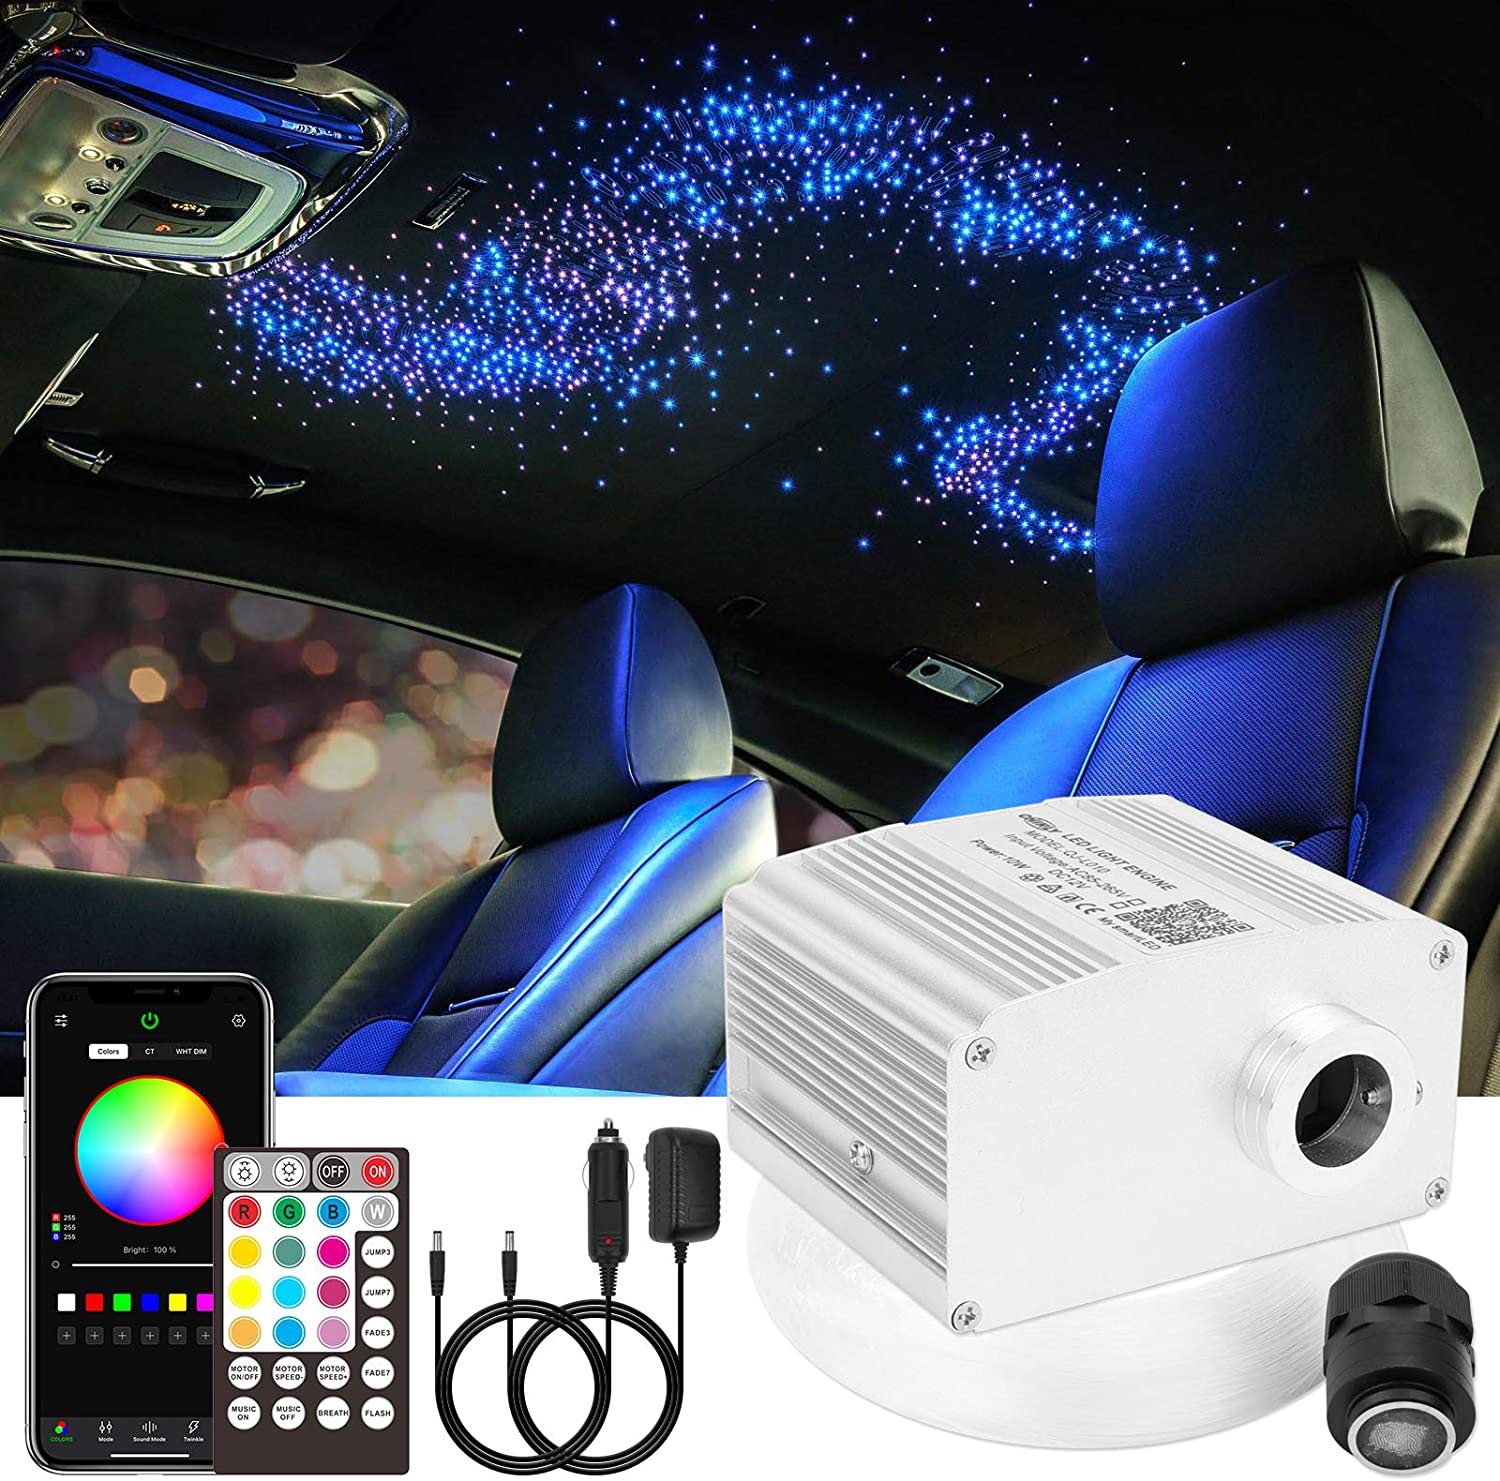 CHINLY 10W Twinkle Bluetooth APP/Remote RGBW LED Fiber Optic Star Ceiling Lights Kit 450pcs 13.1ft Mixed-inch(0.03in+0.04in+0.06in) Optical Fiber+Adapter+Cigarette Lighter for Car/Home Theater